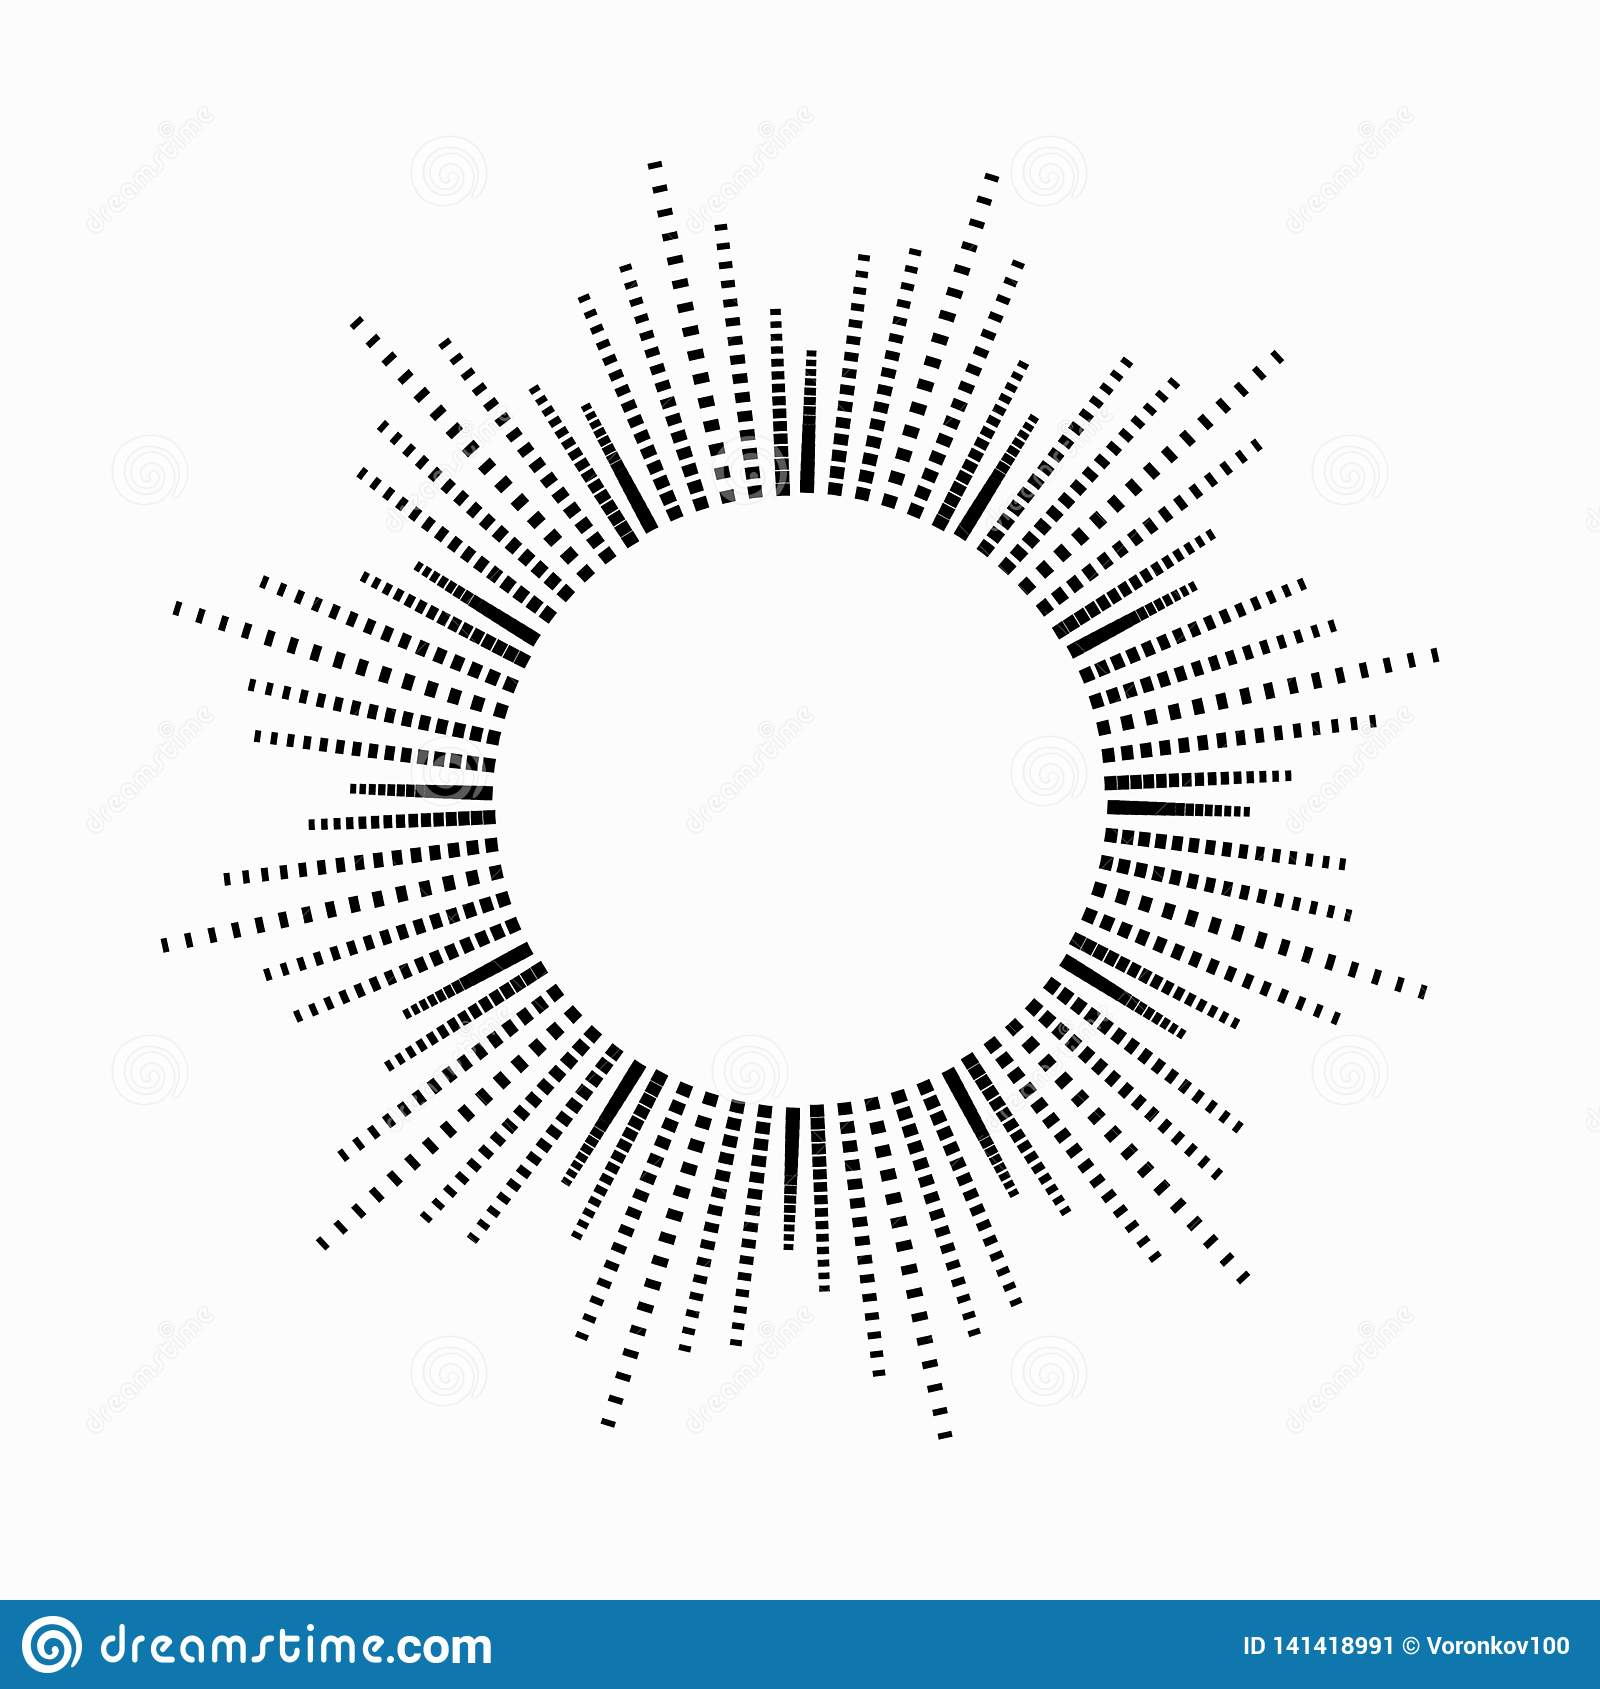 Round abstract equalizer music in the shape of the sun with rays. Symbol, monochrome, icon. Vector design element